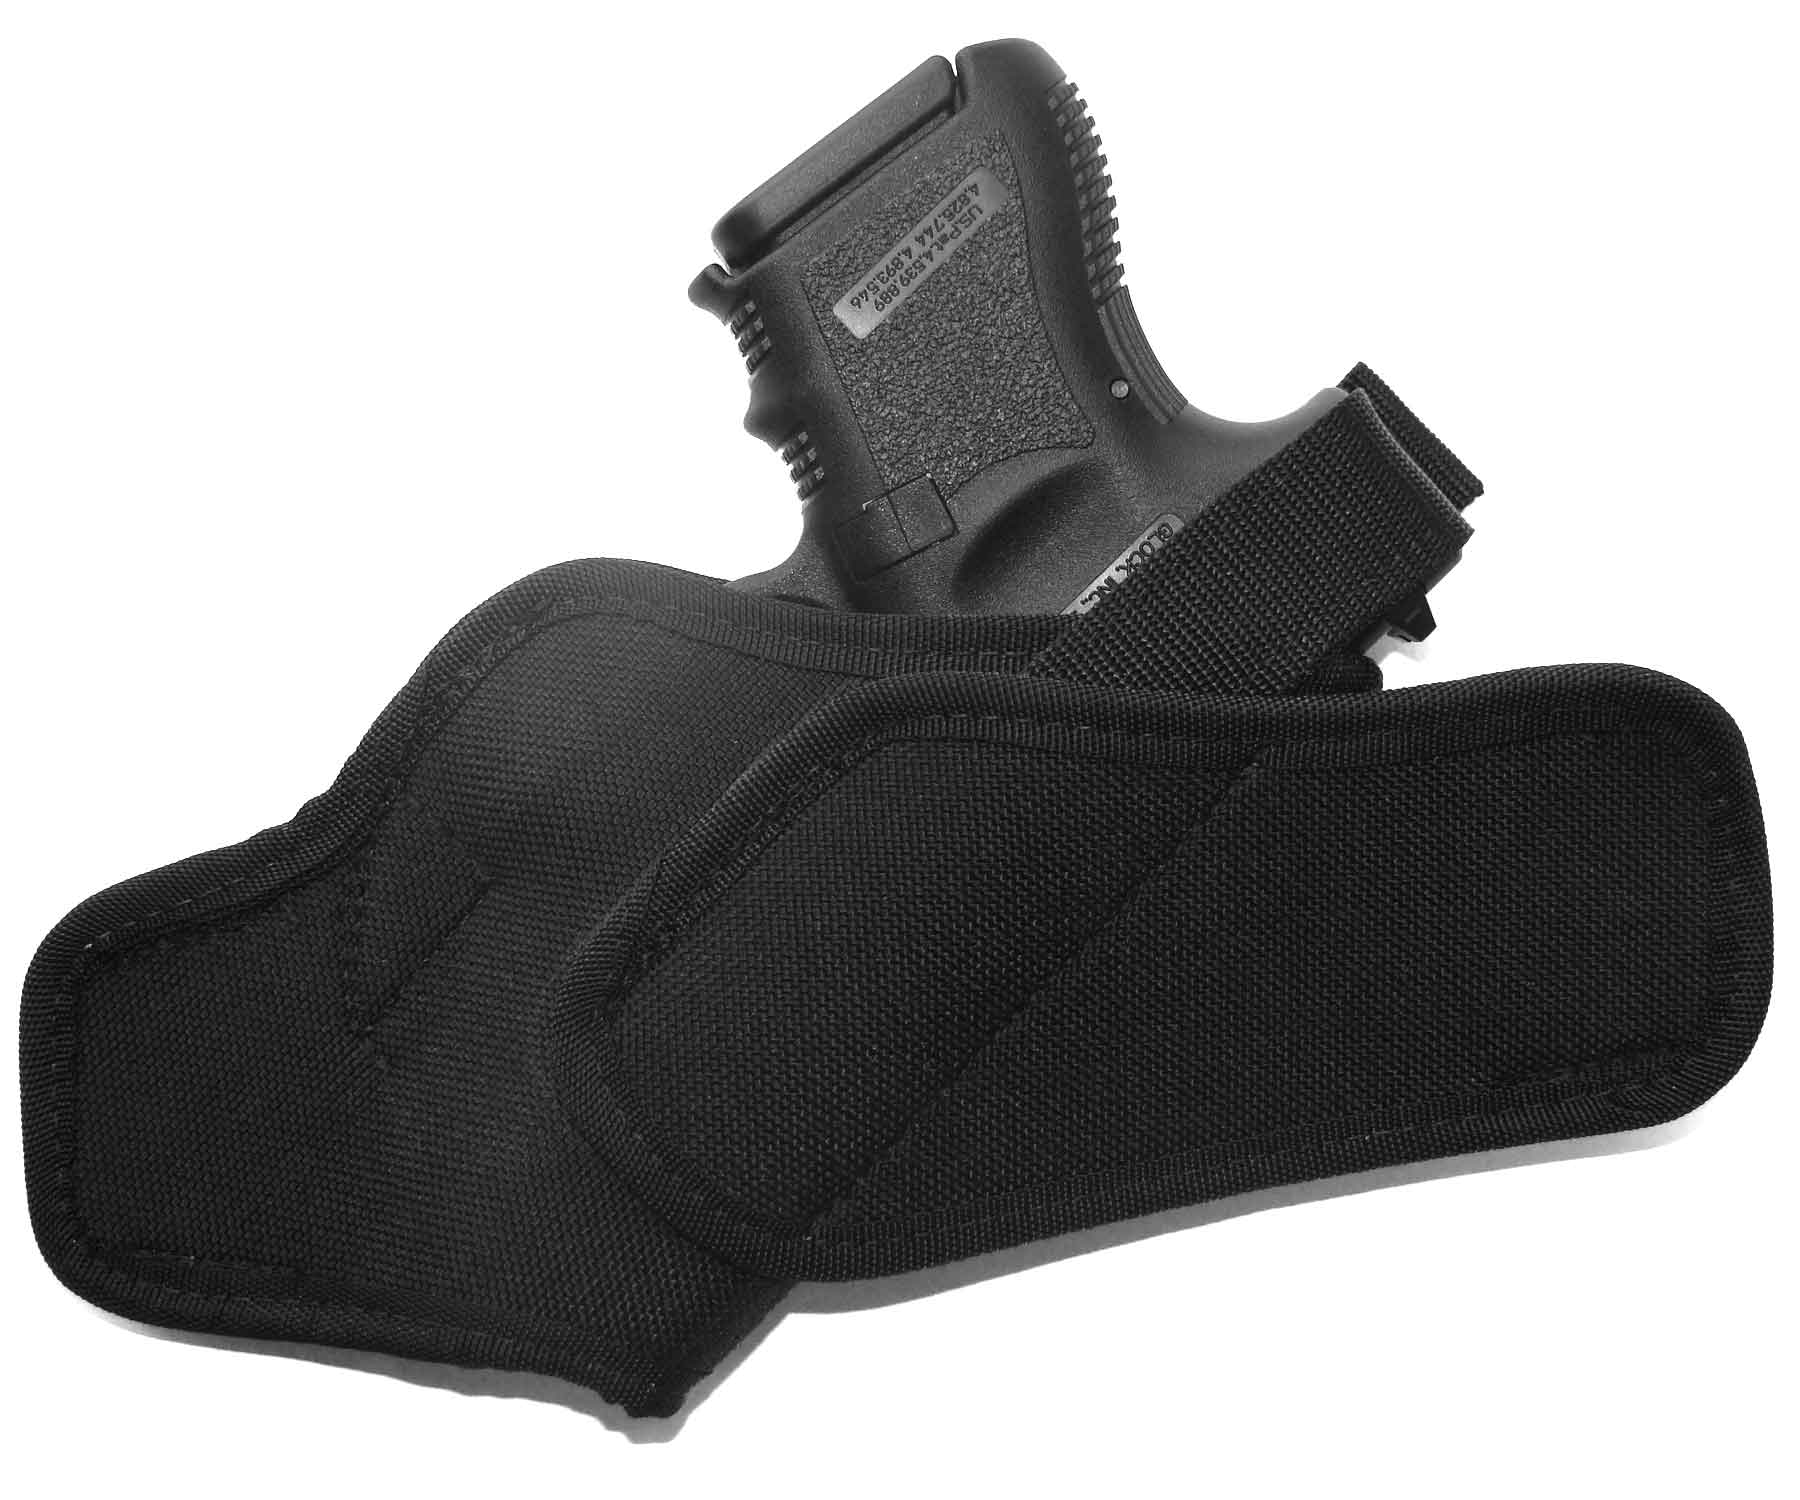 Small of the Back Concealed Carry Holster